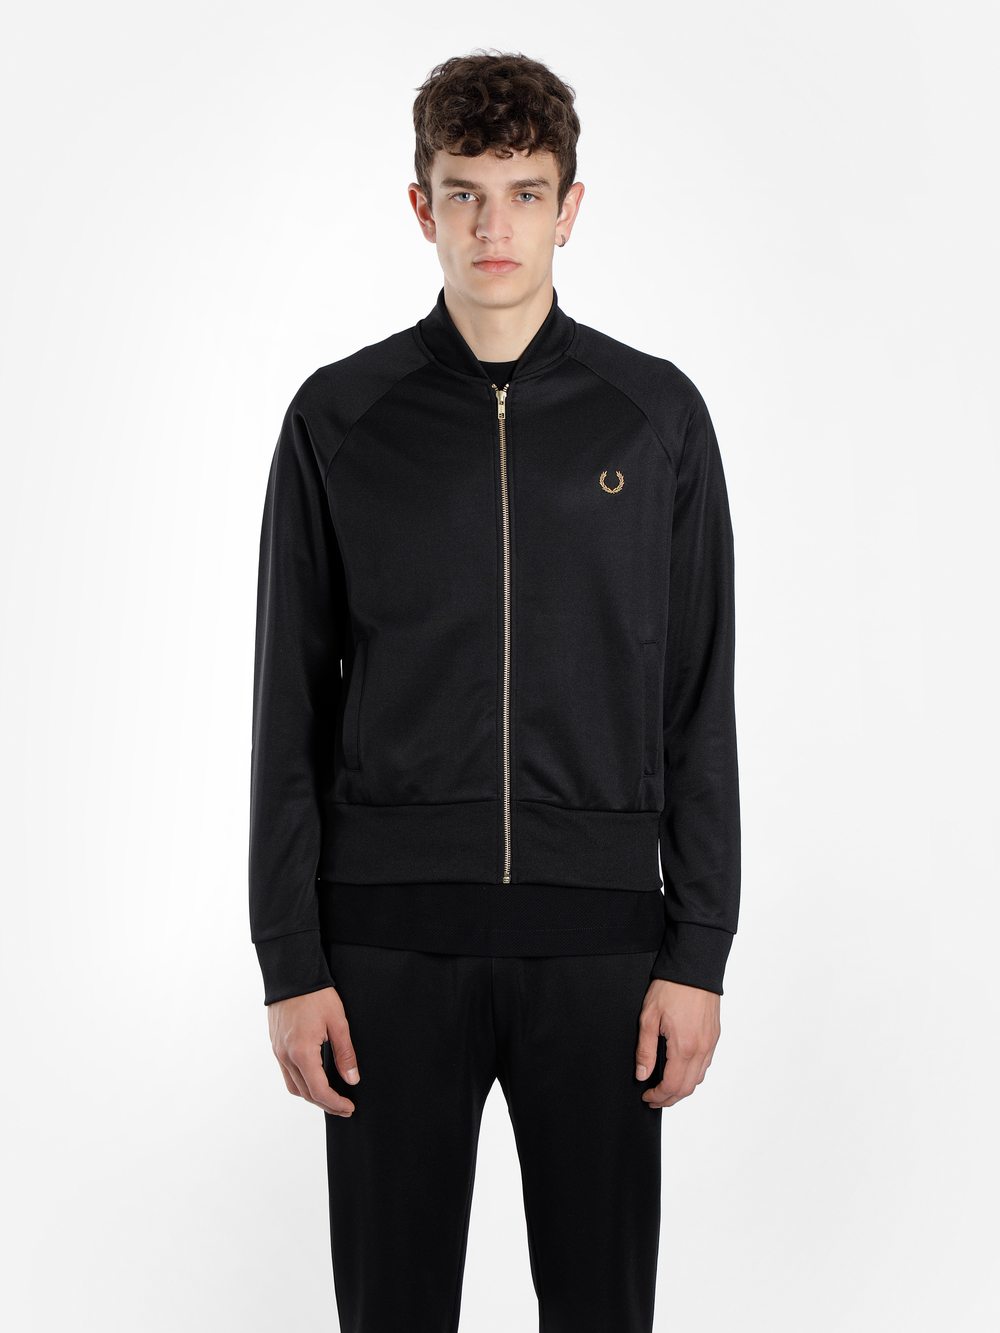 26 Fred Perry Sc4018 Fp Vestes waqpxaX